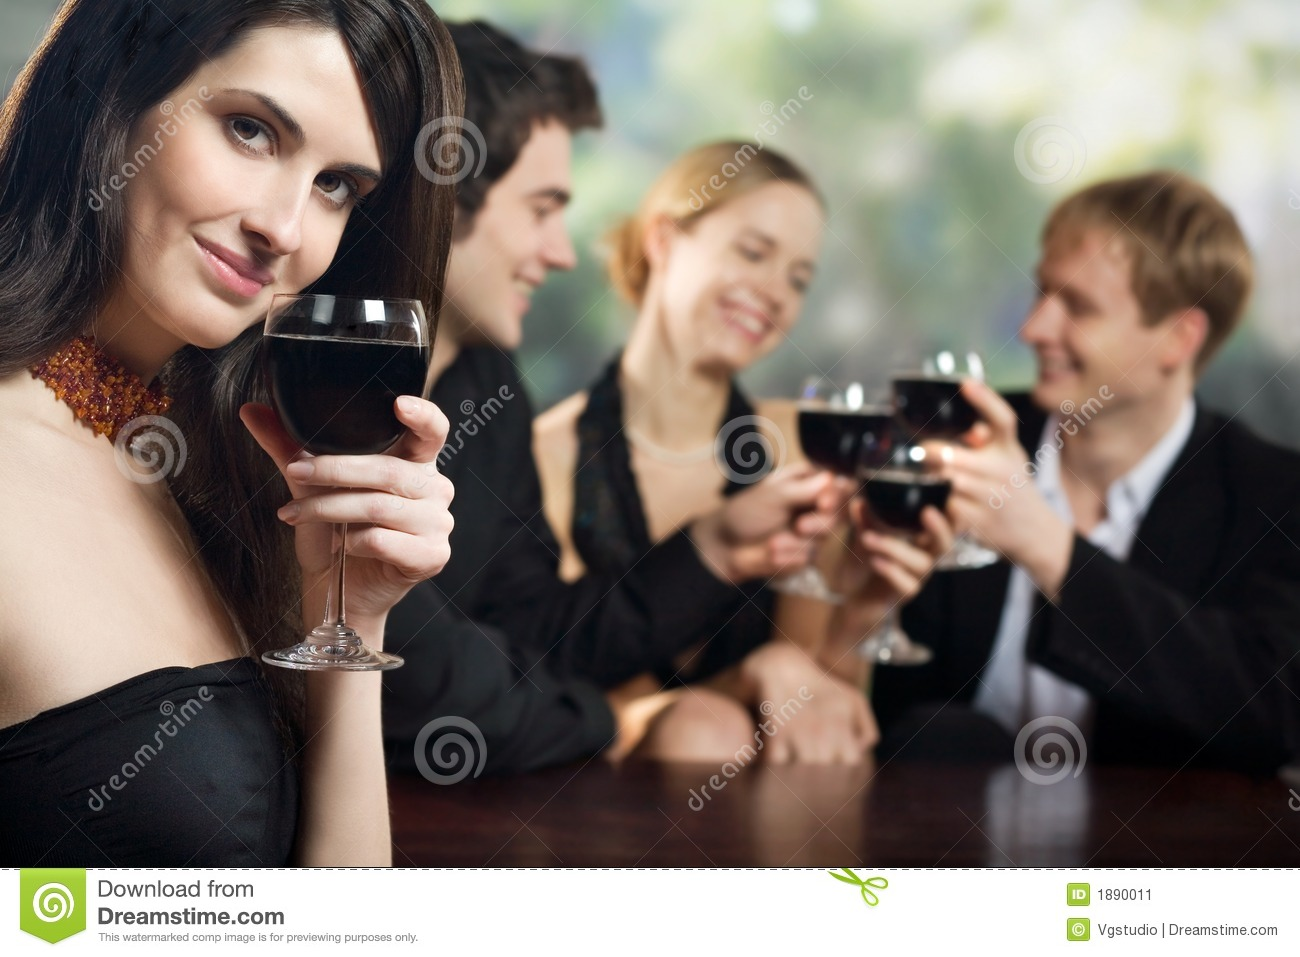 Two young couples with red wine glasses at celebration or party